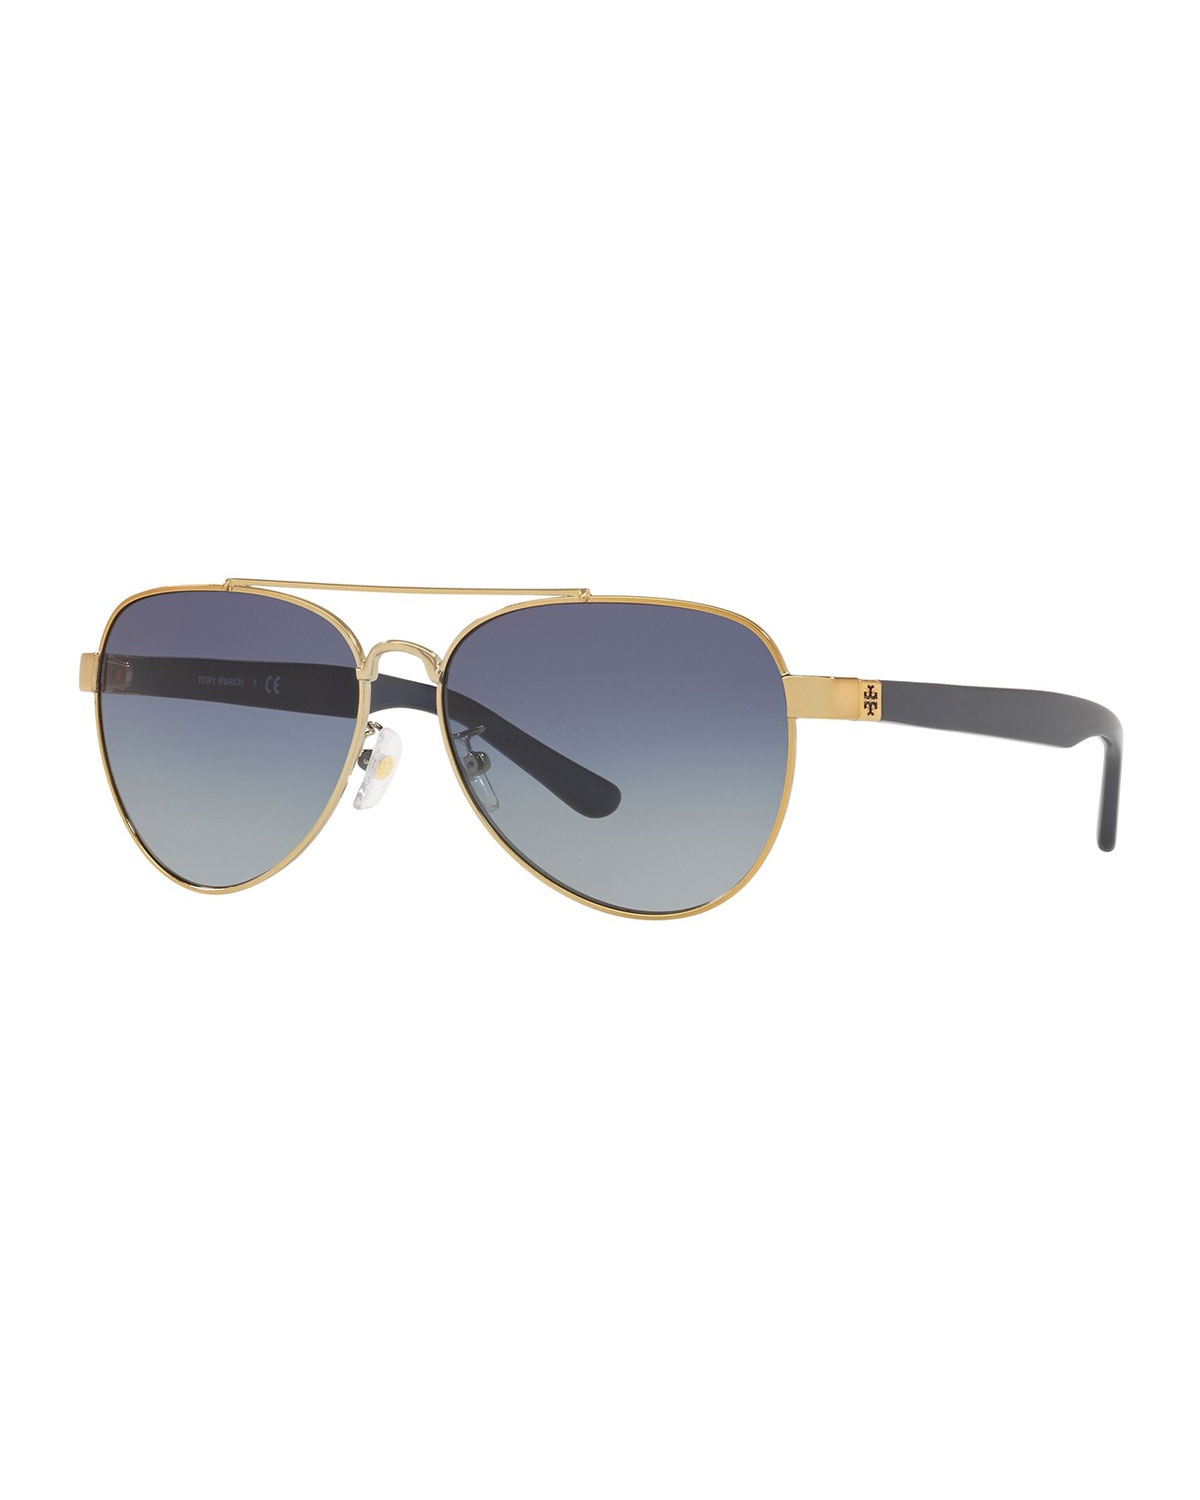 33df3d287c35 Tory Burch Mirrored Metal Aviator Sunglasses